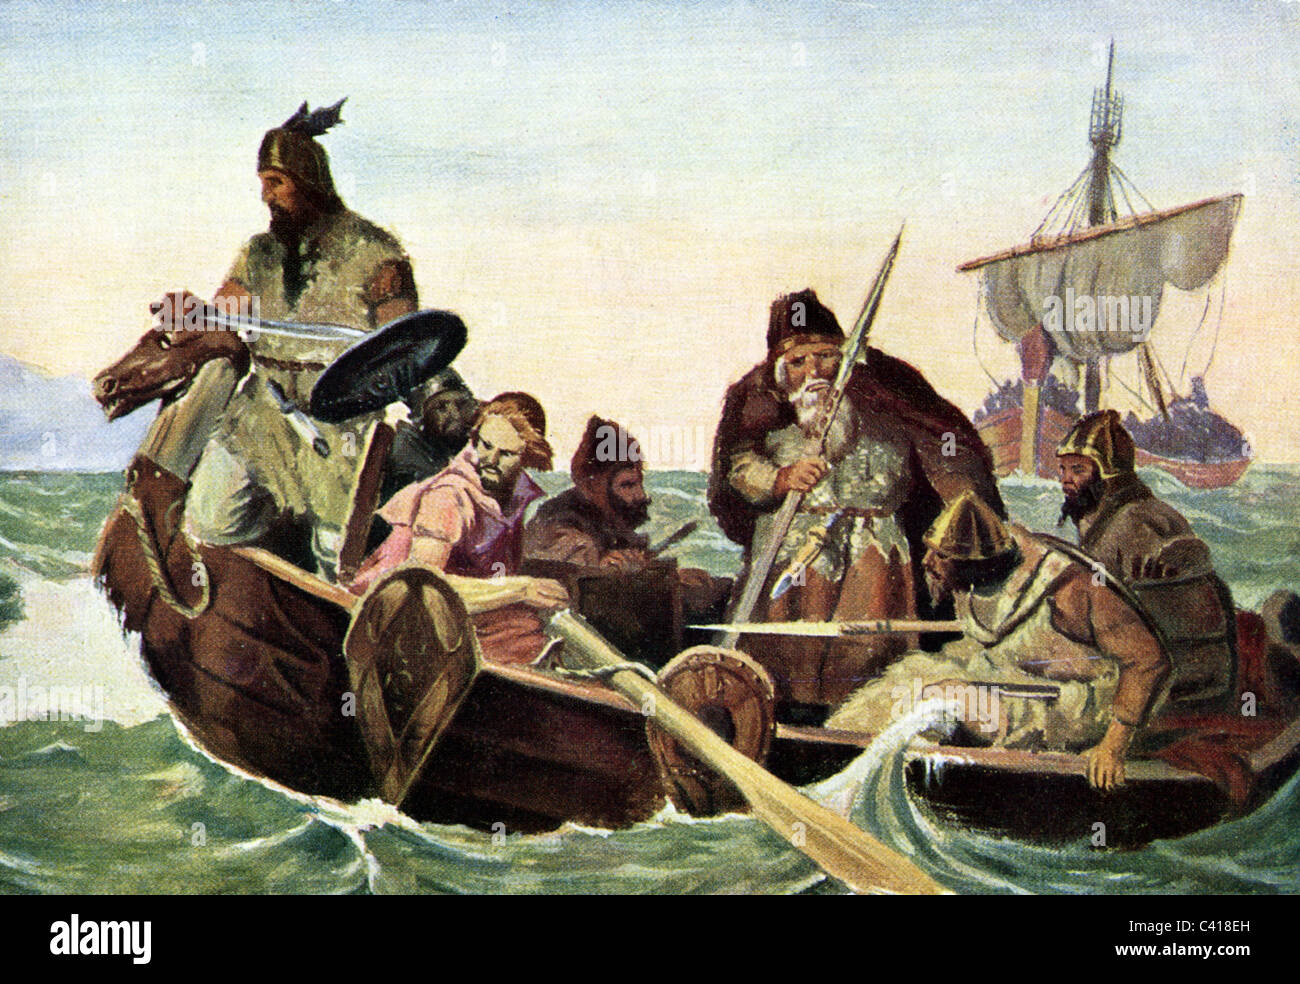 Middle Ages, Vikings, dinghy, after painting by O. Wergeland, 19th century, historic, historical, dinghies, medieval - Stock Image